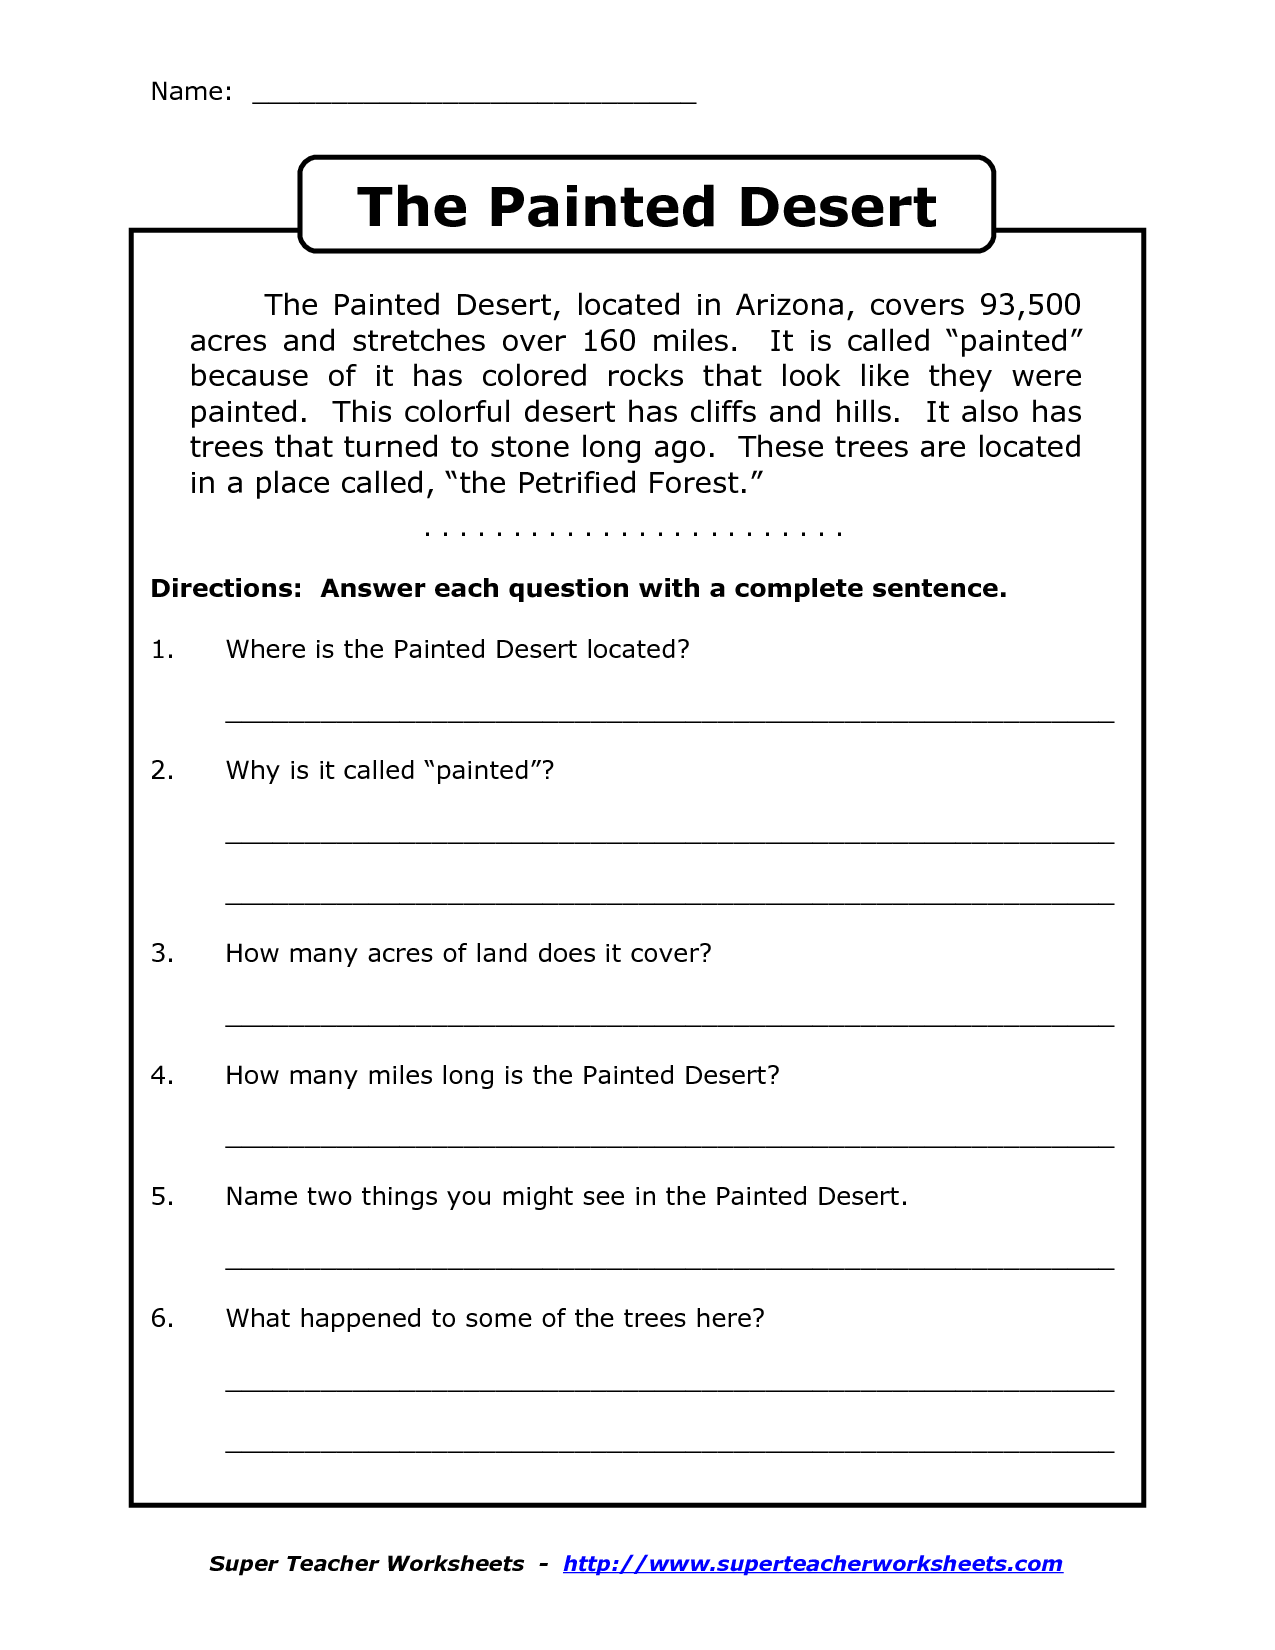 Worksheets 2 Grade Reading Worksheets reading worksheets for 4th grade comprehension 3 name the painted desert